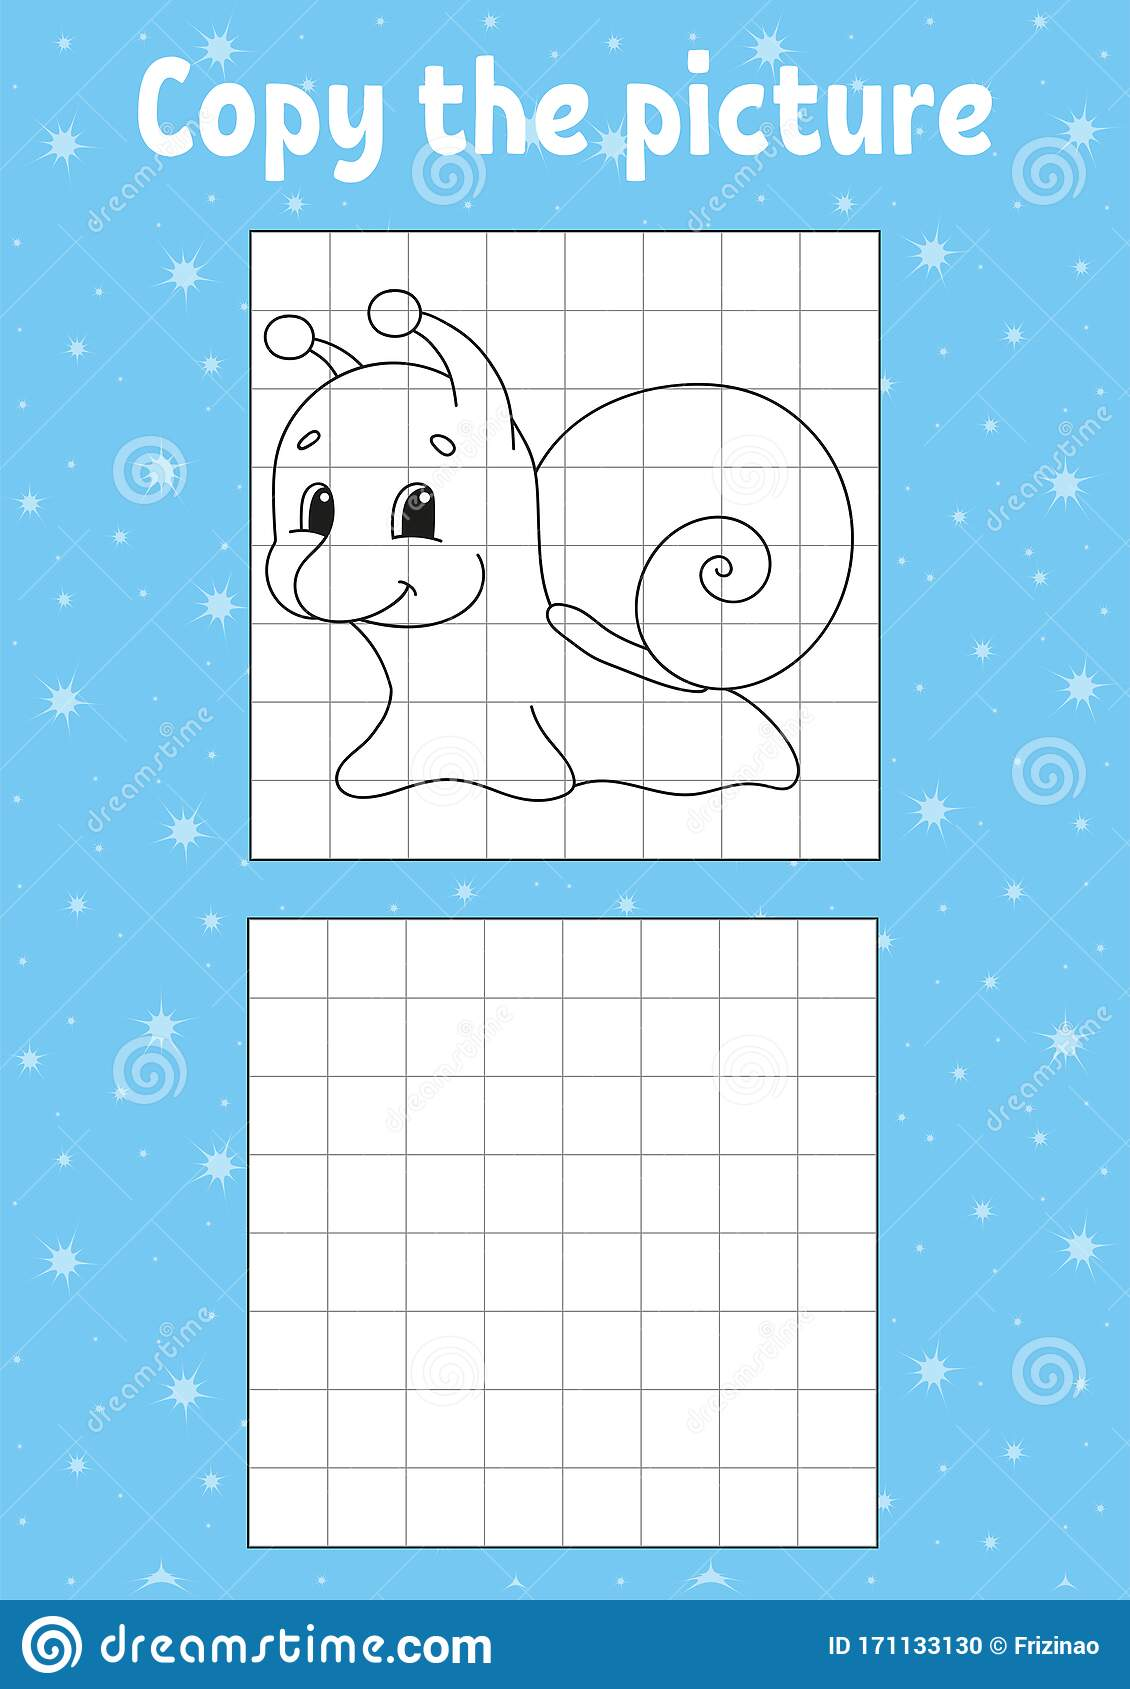 Copy The Picture Snail Mollusk Coloring Book Pages For